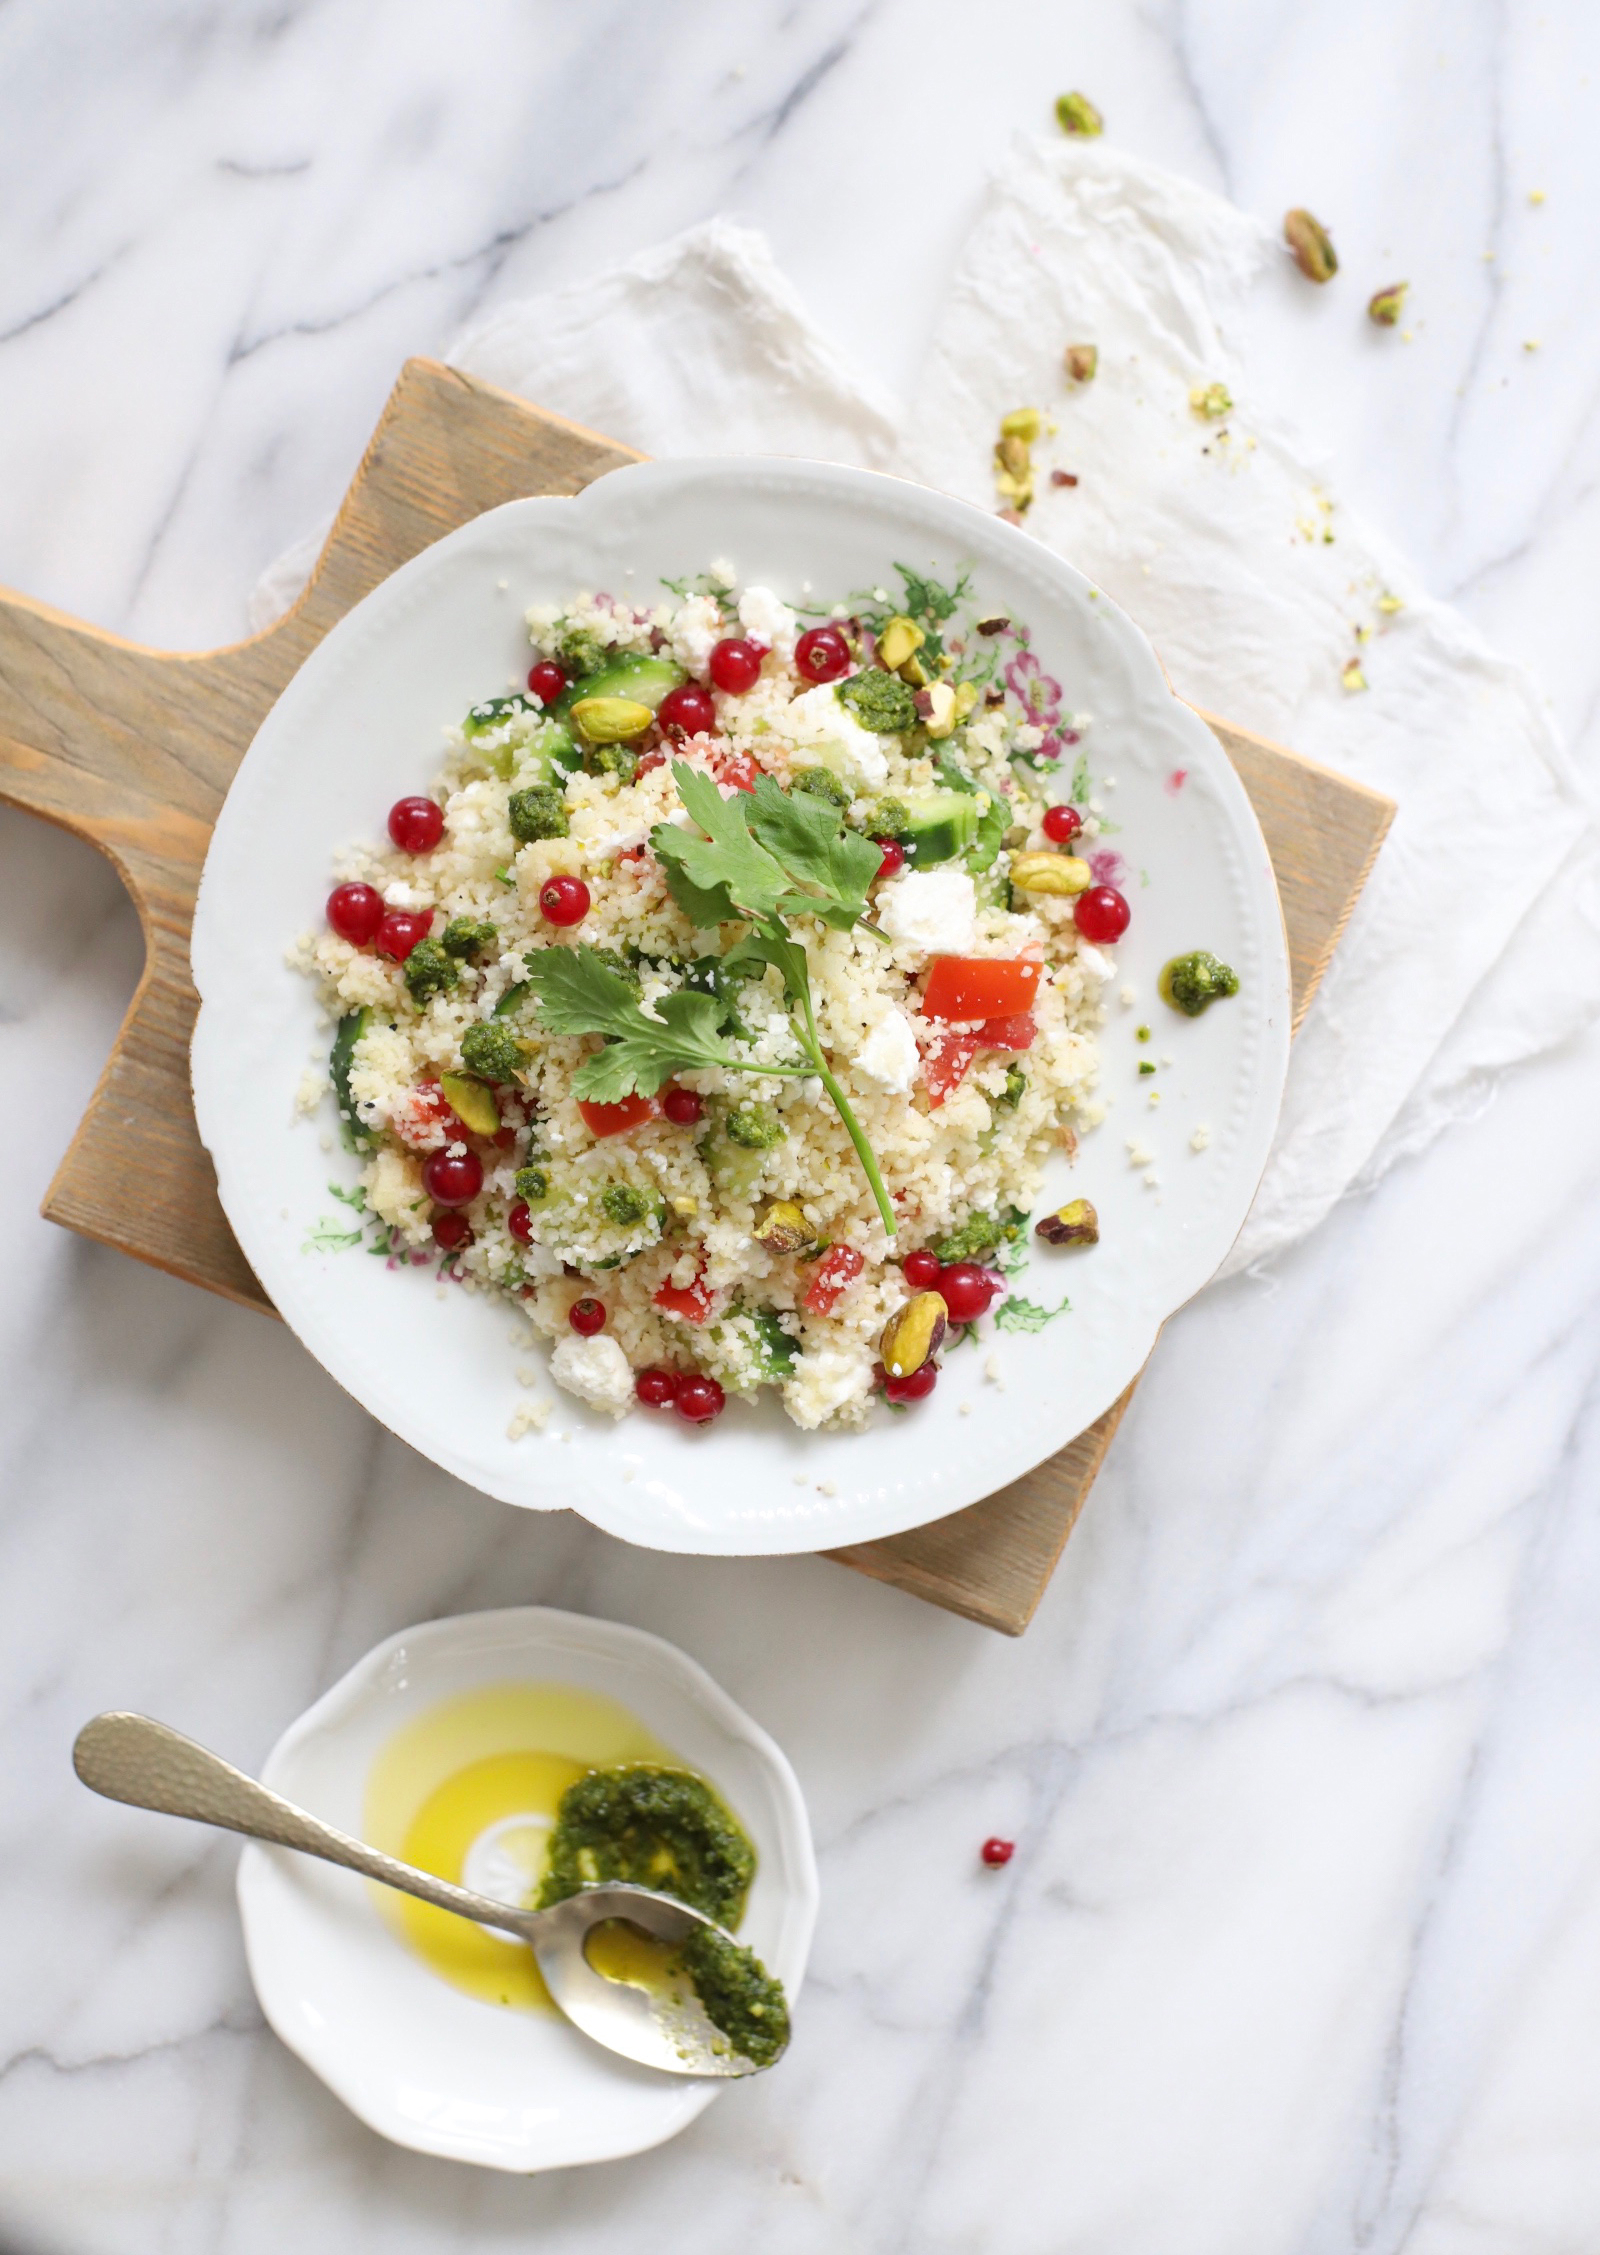 couscous salade met pesto, feta, citroen & rode besjes 'The Lemon Kitchen